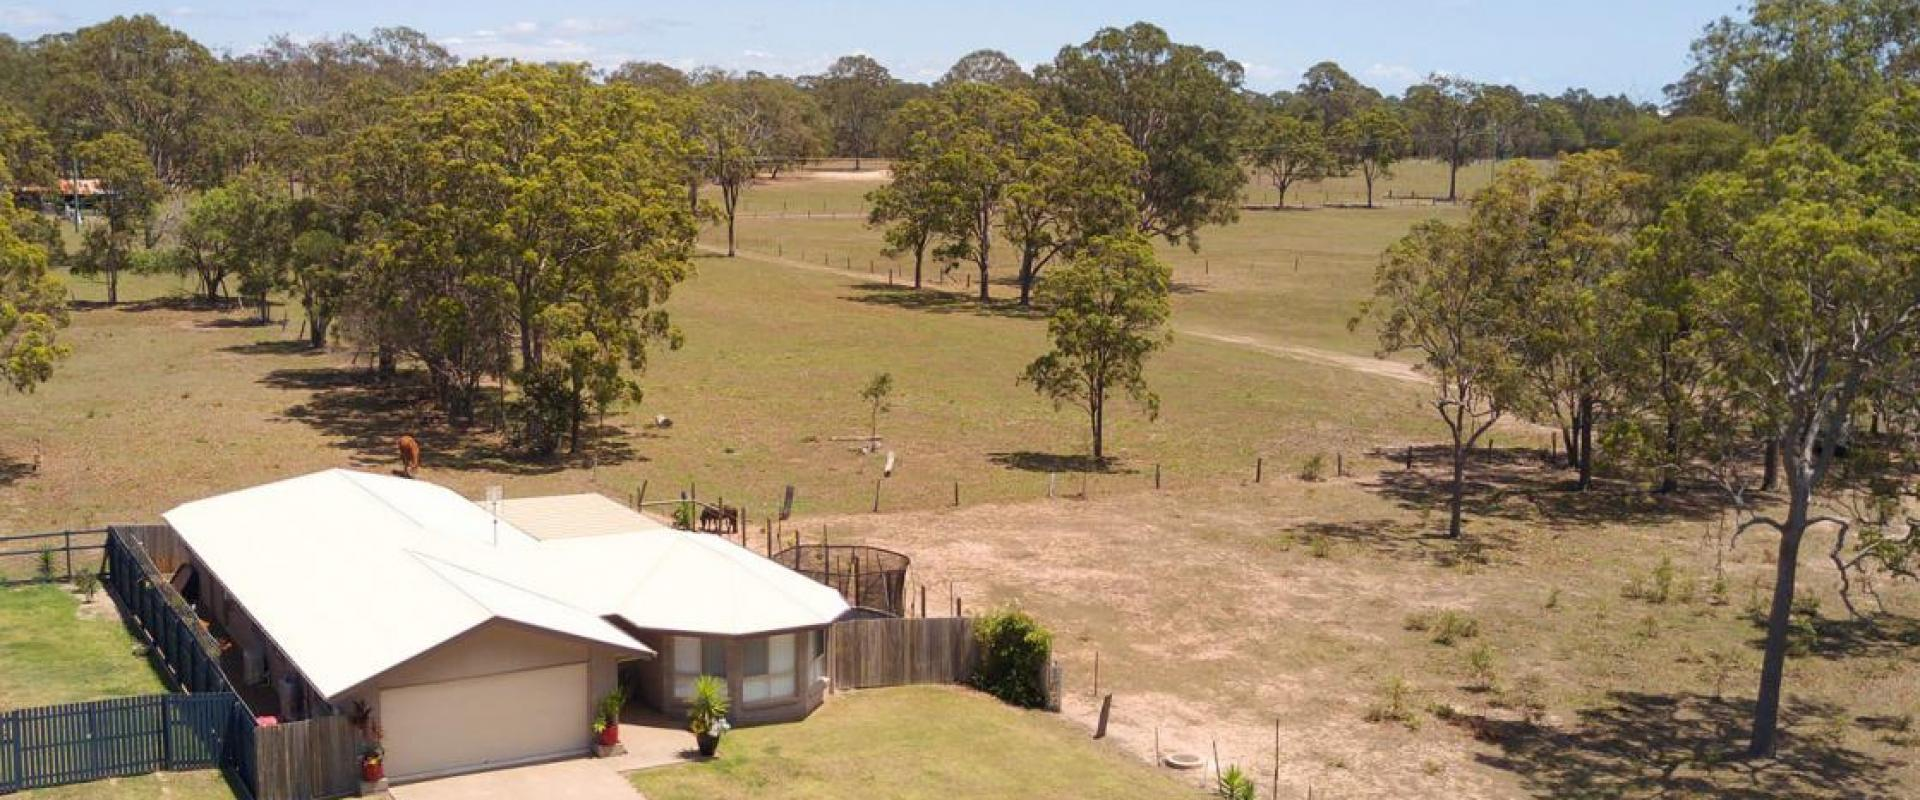 UNIQUE OPPORTUNITY, ACREAGE VIEWS WITHOUT THE MAINTENANCE, PEACE AND QUIET, WIDE OPEN SPACE, AN ABUNDANCE OF WILDLIFE, FARM CATTLE, HORSES, KANGAROOS